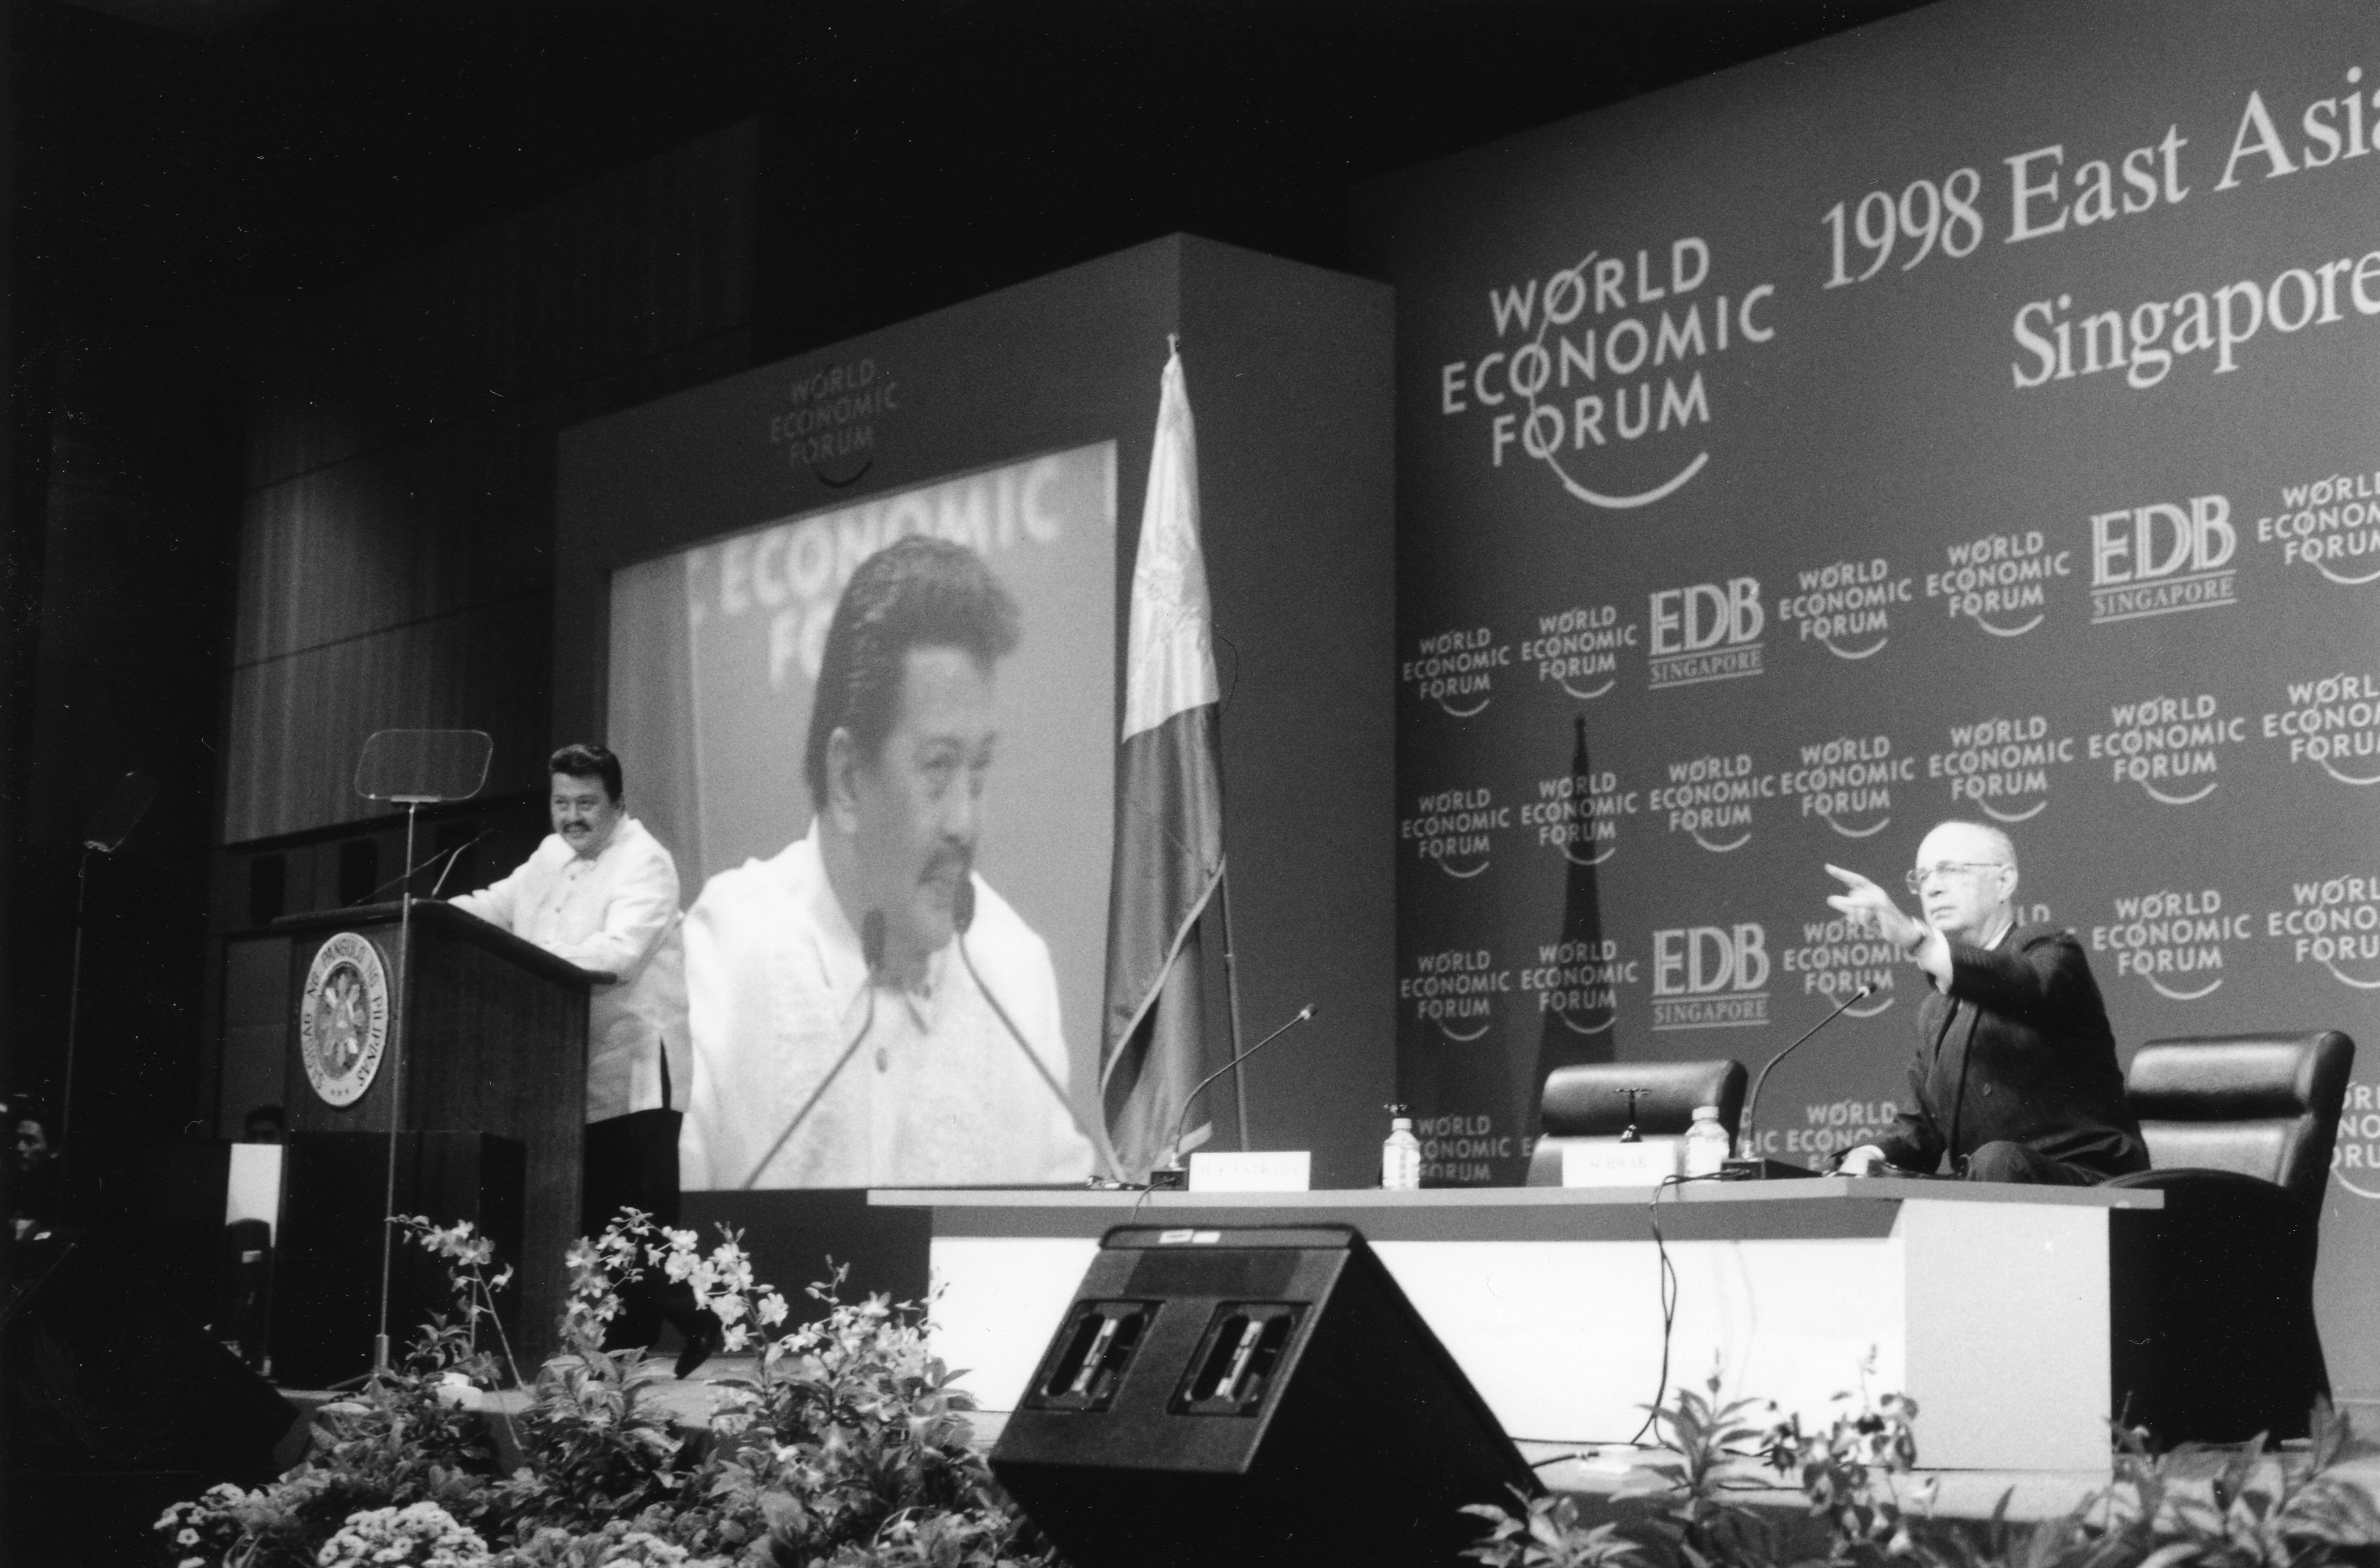 Joseph Estrada, President of the Philippines, speaking at a session